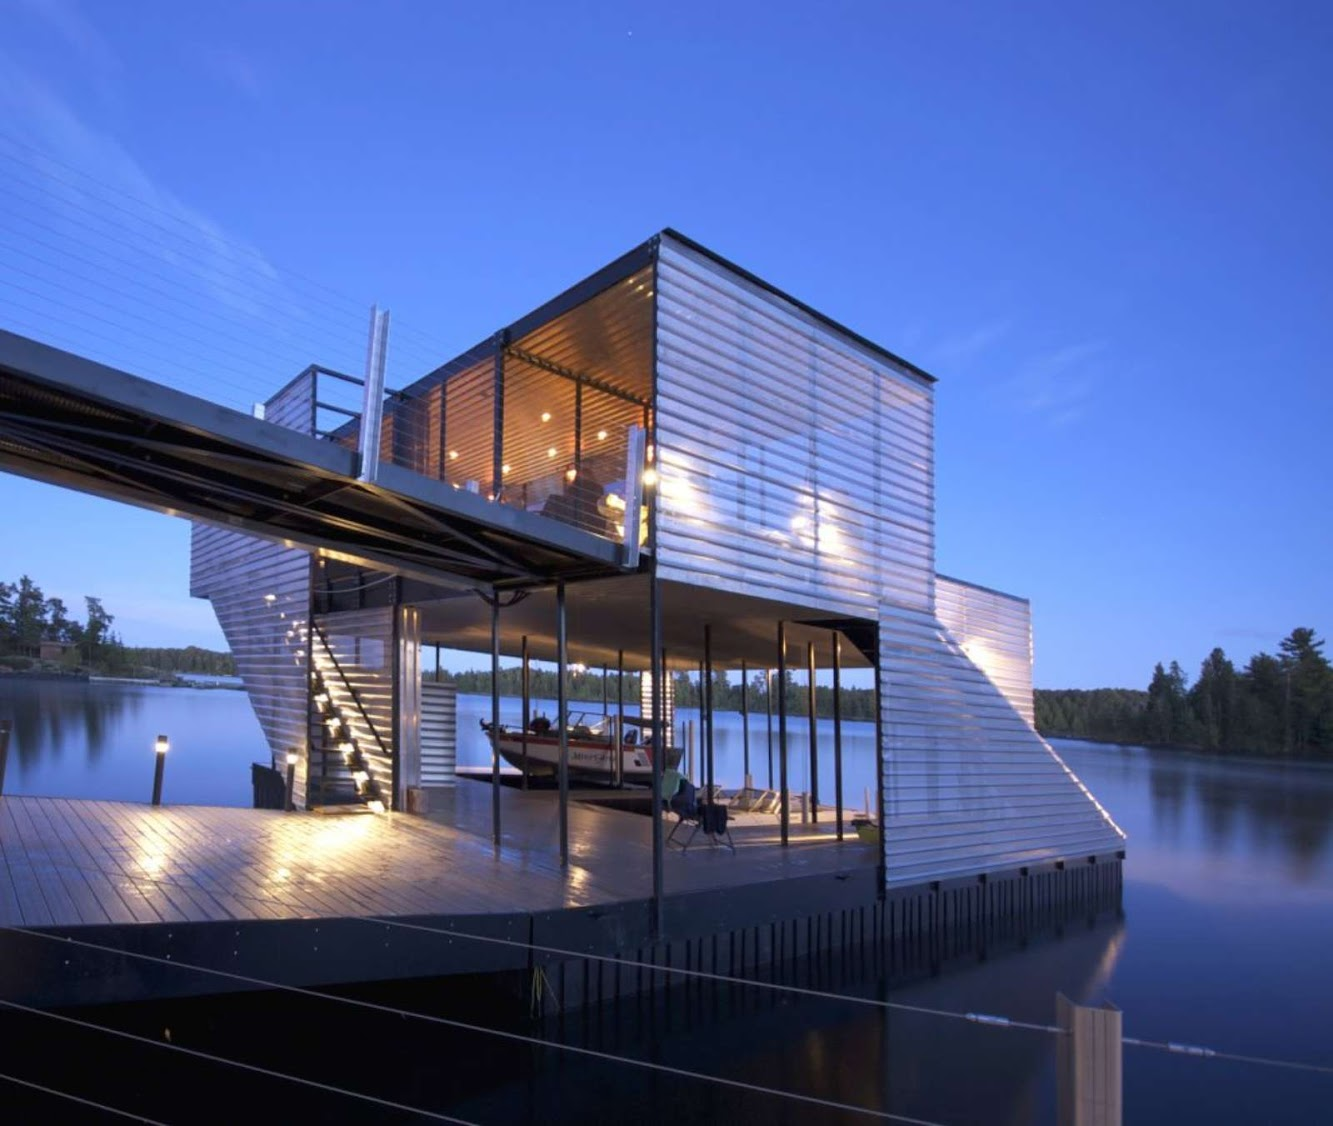 Guertin Boatport by 5468796 Architecture